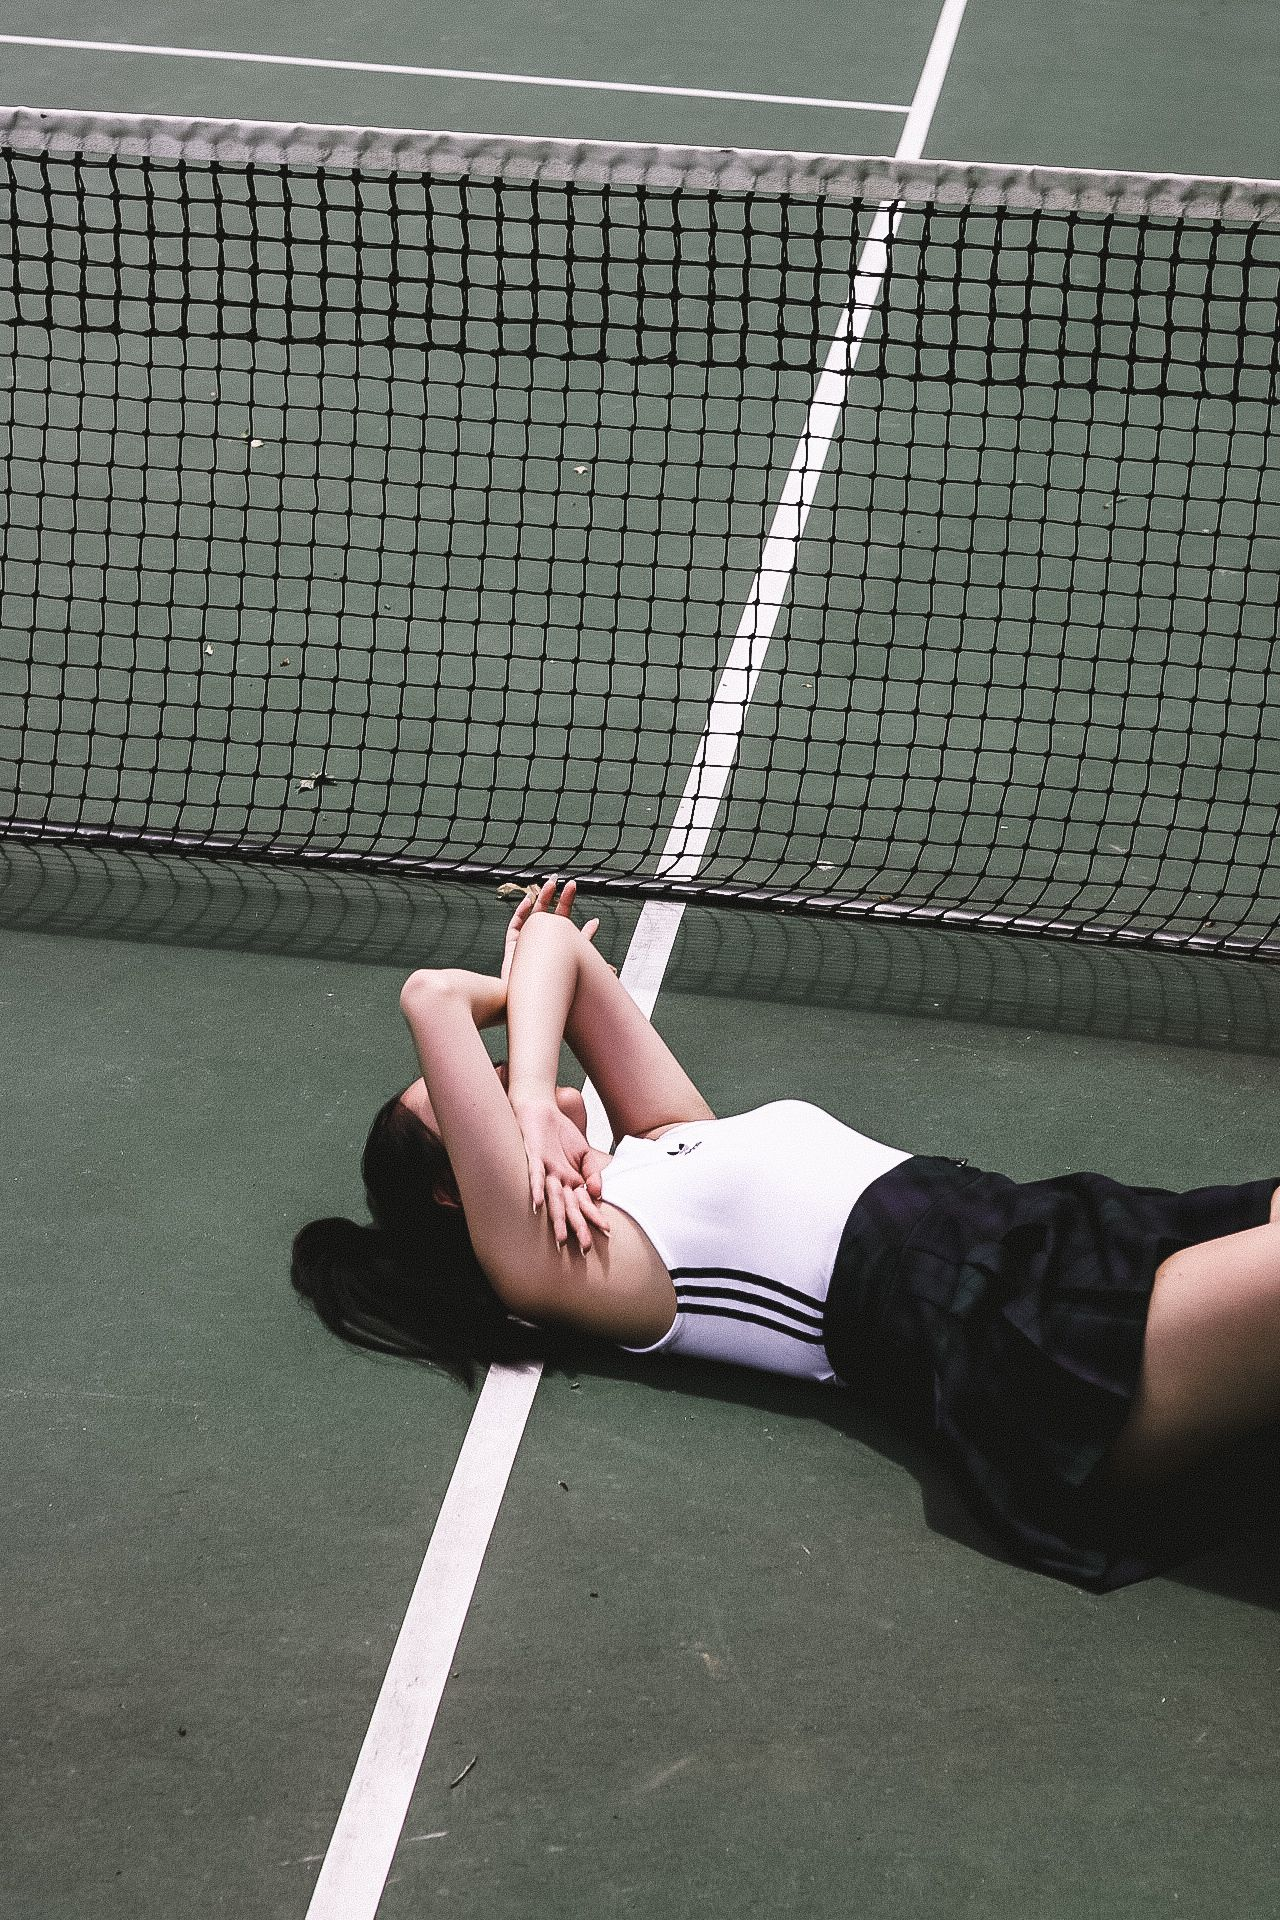 Some More Pictures From A Friend At A Tennis Court Tennis Court Photoshoot Roller Skating Outfits Urban Photography